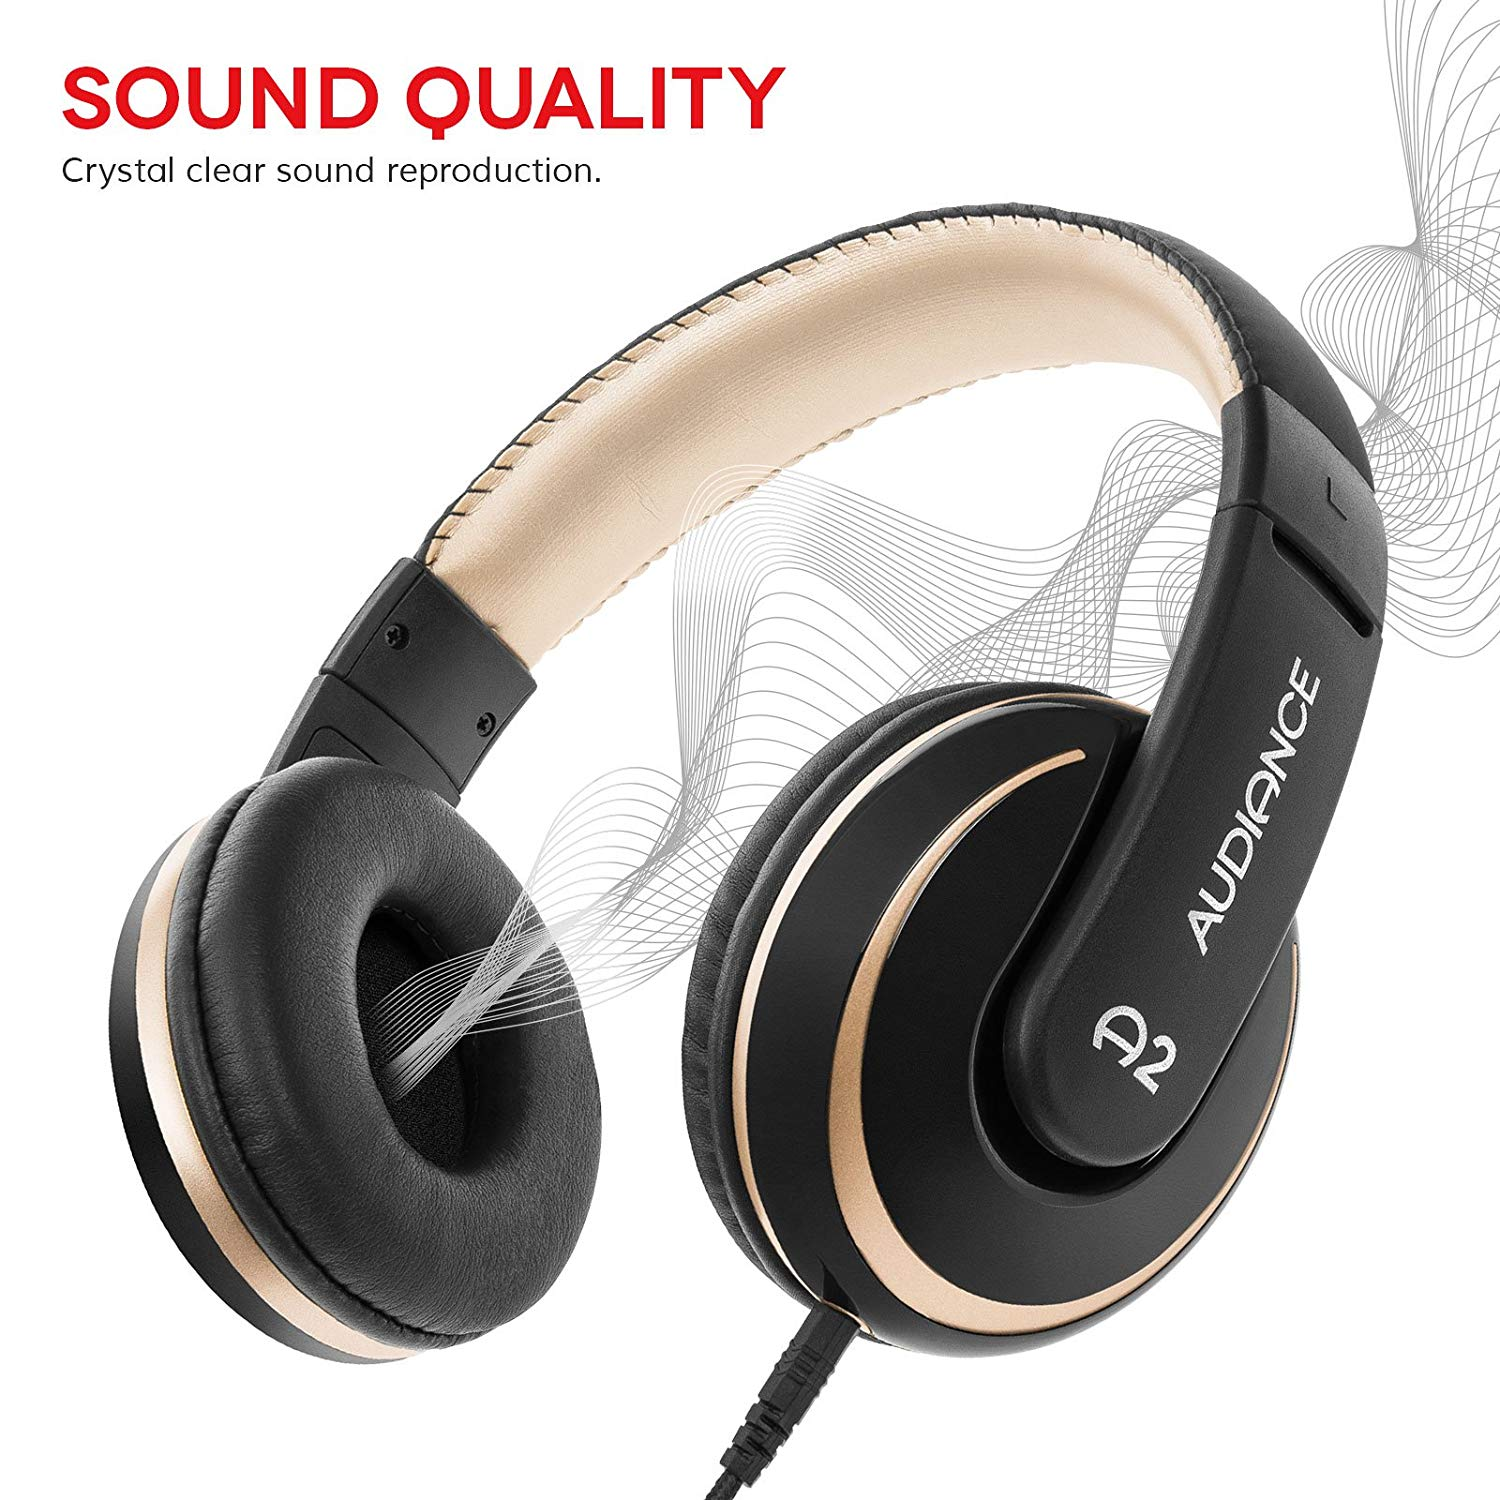 Audiance A2 Over Ear Stereo Headphones in Black & Gold [Accessories]